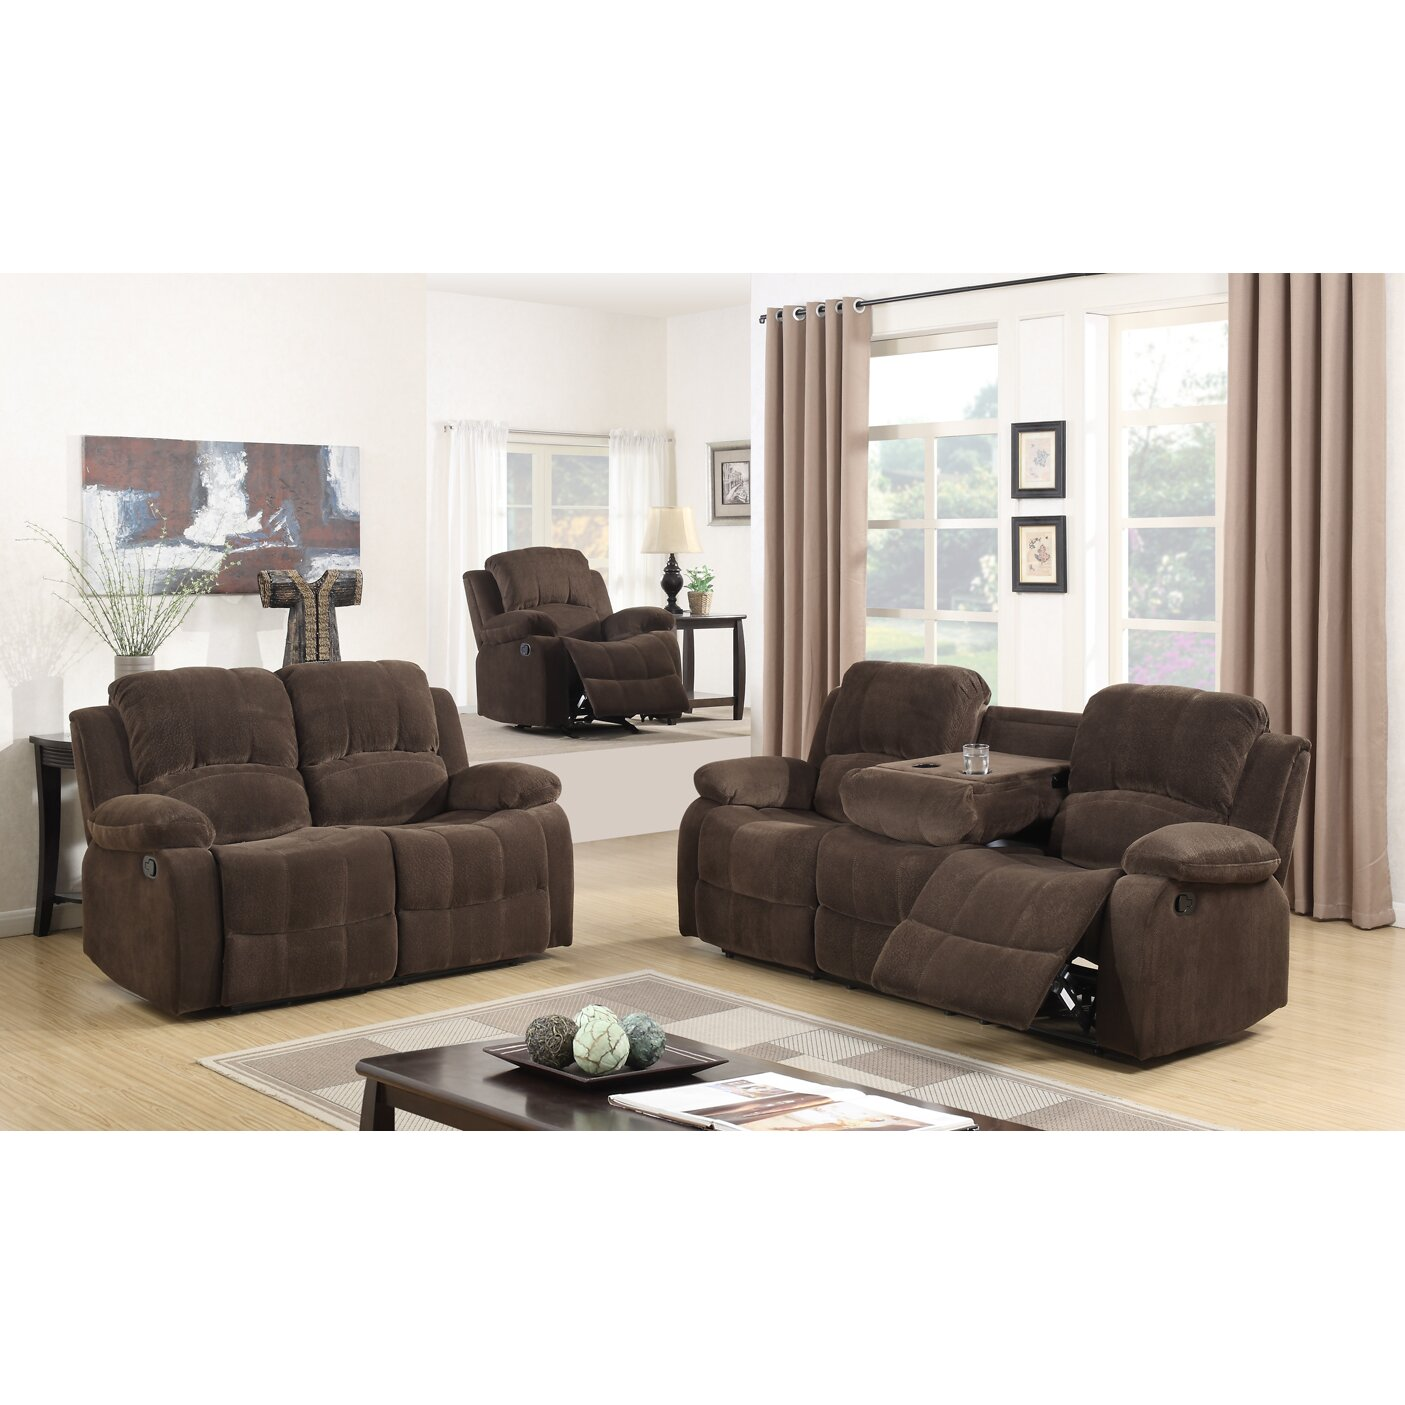 Best quality furniture fabric 3 piece recliner living room - Best quality living room furniture ...